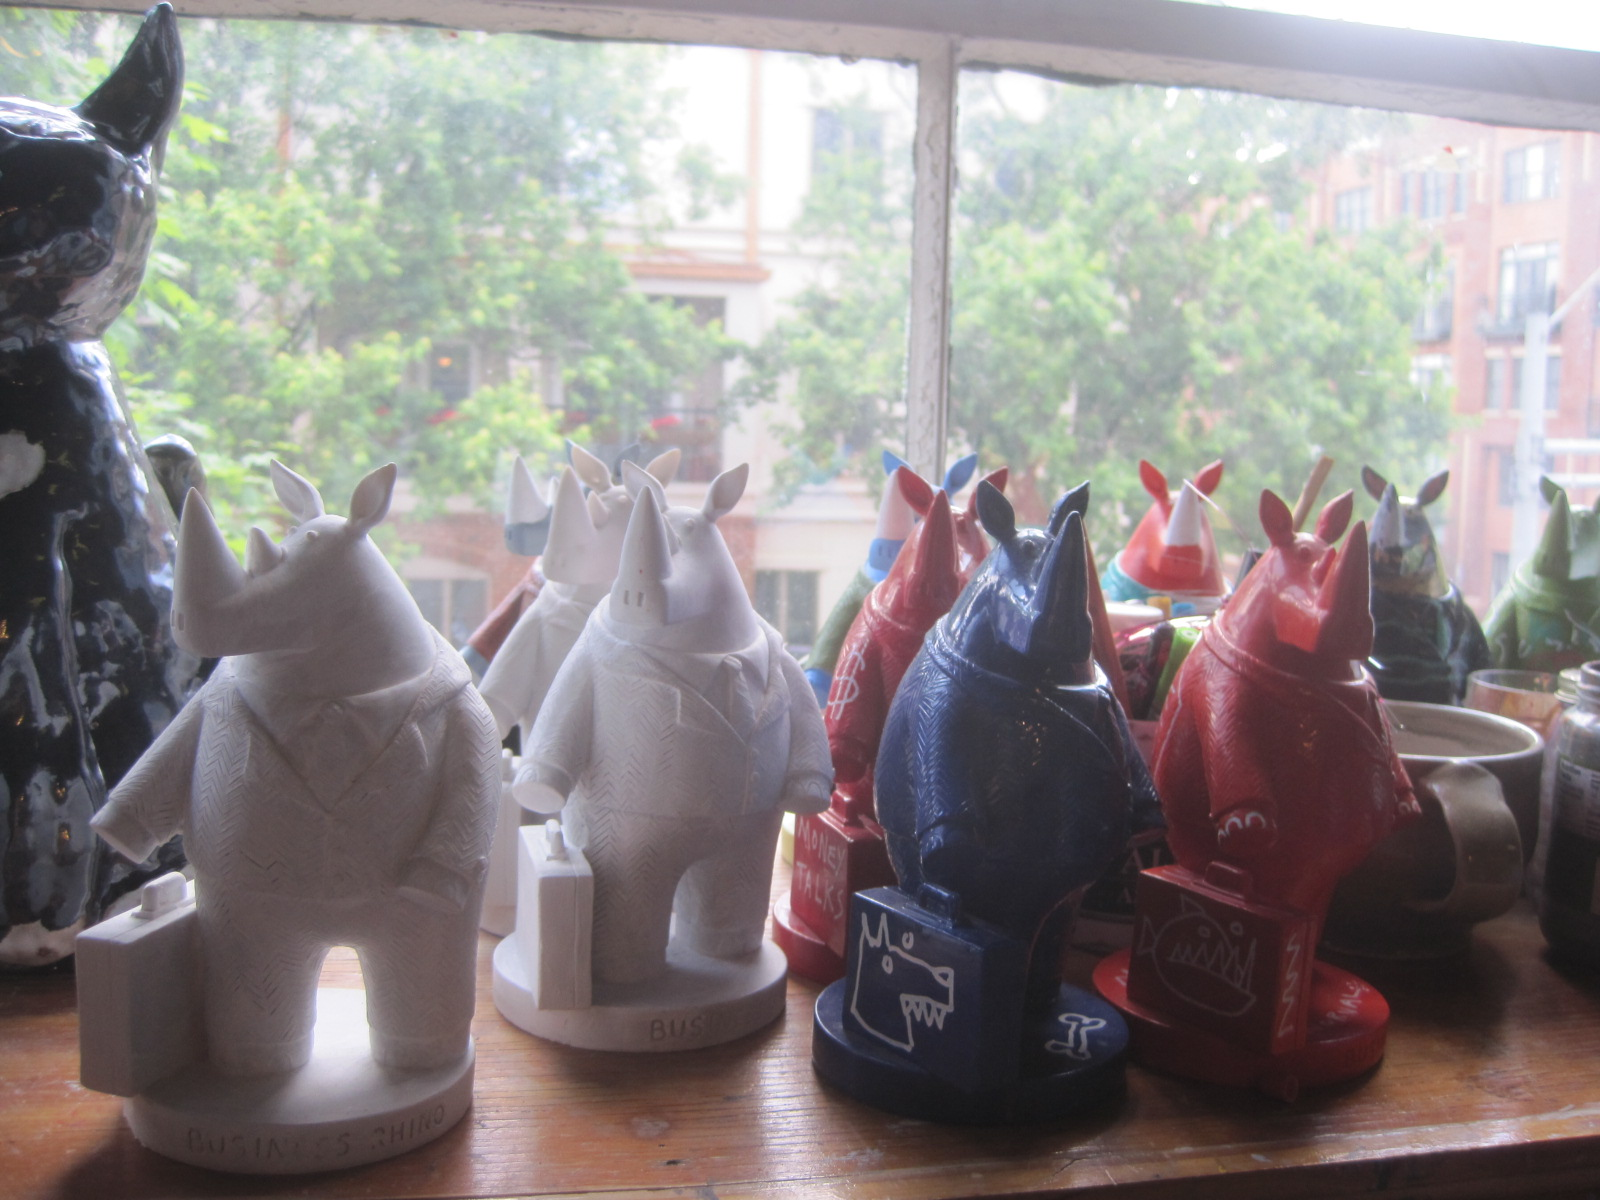 Some rhino sculptures at the studio. These Rhinos are manufactured to my specifications. Some come factory painted, and some are handprinted by me.On the left are the rhinos that await being hand-painted.